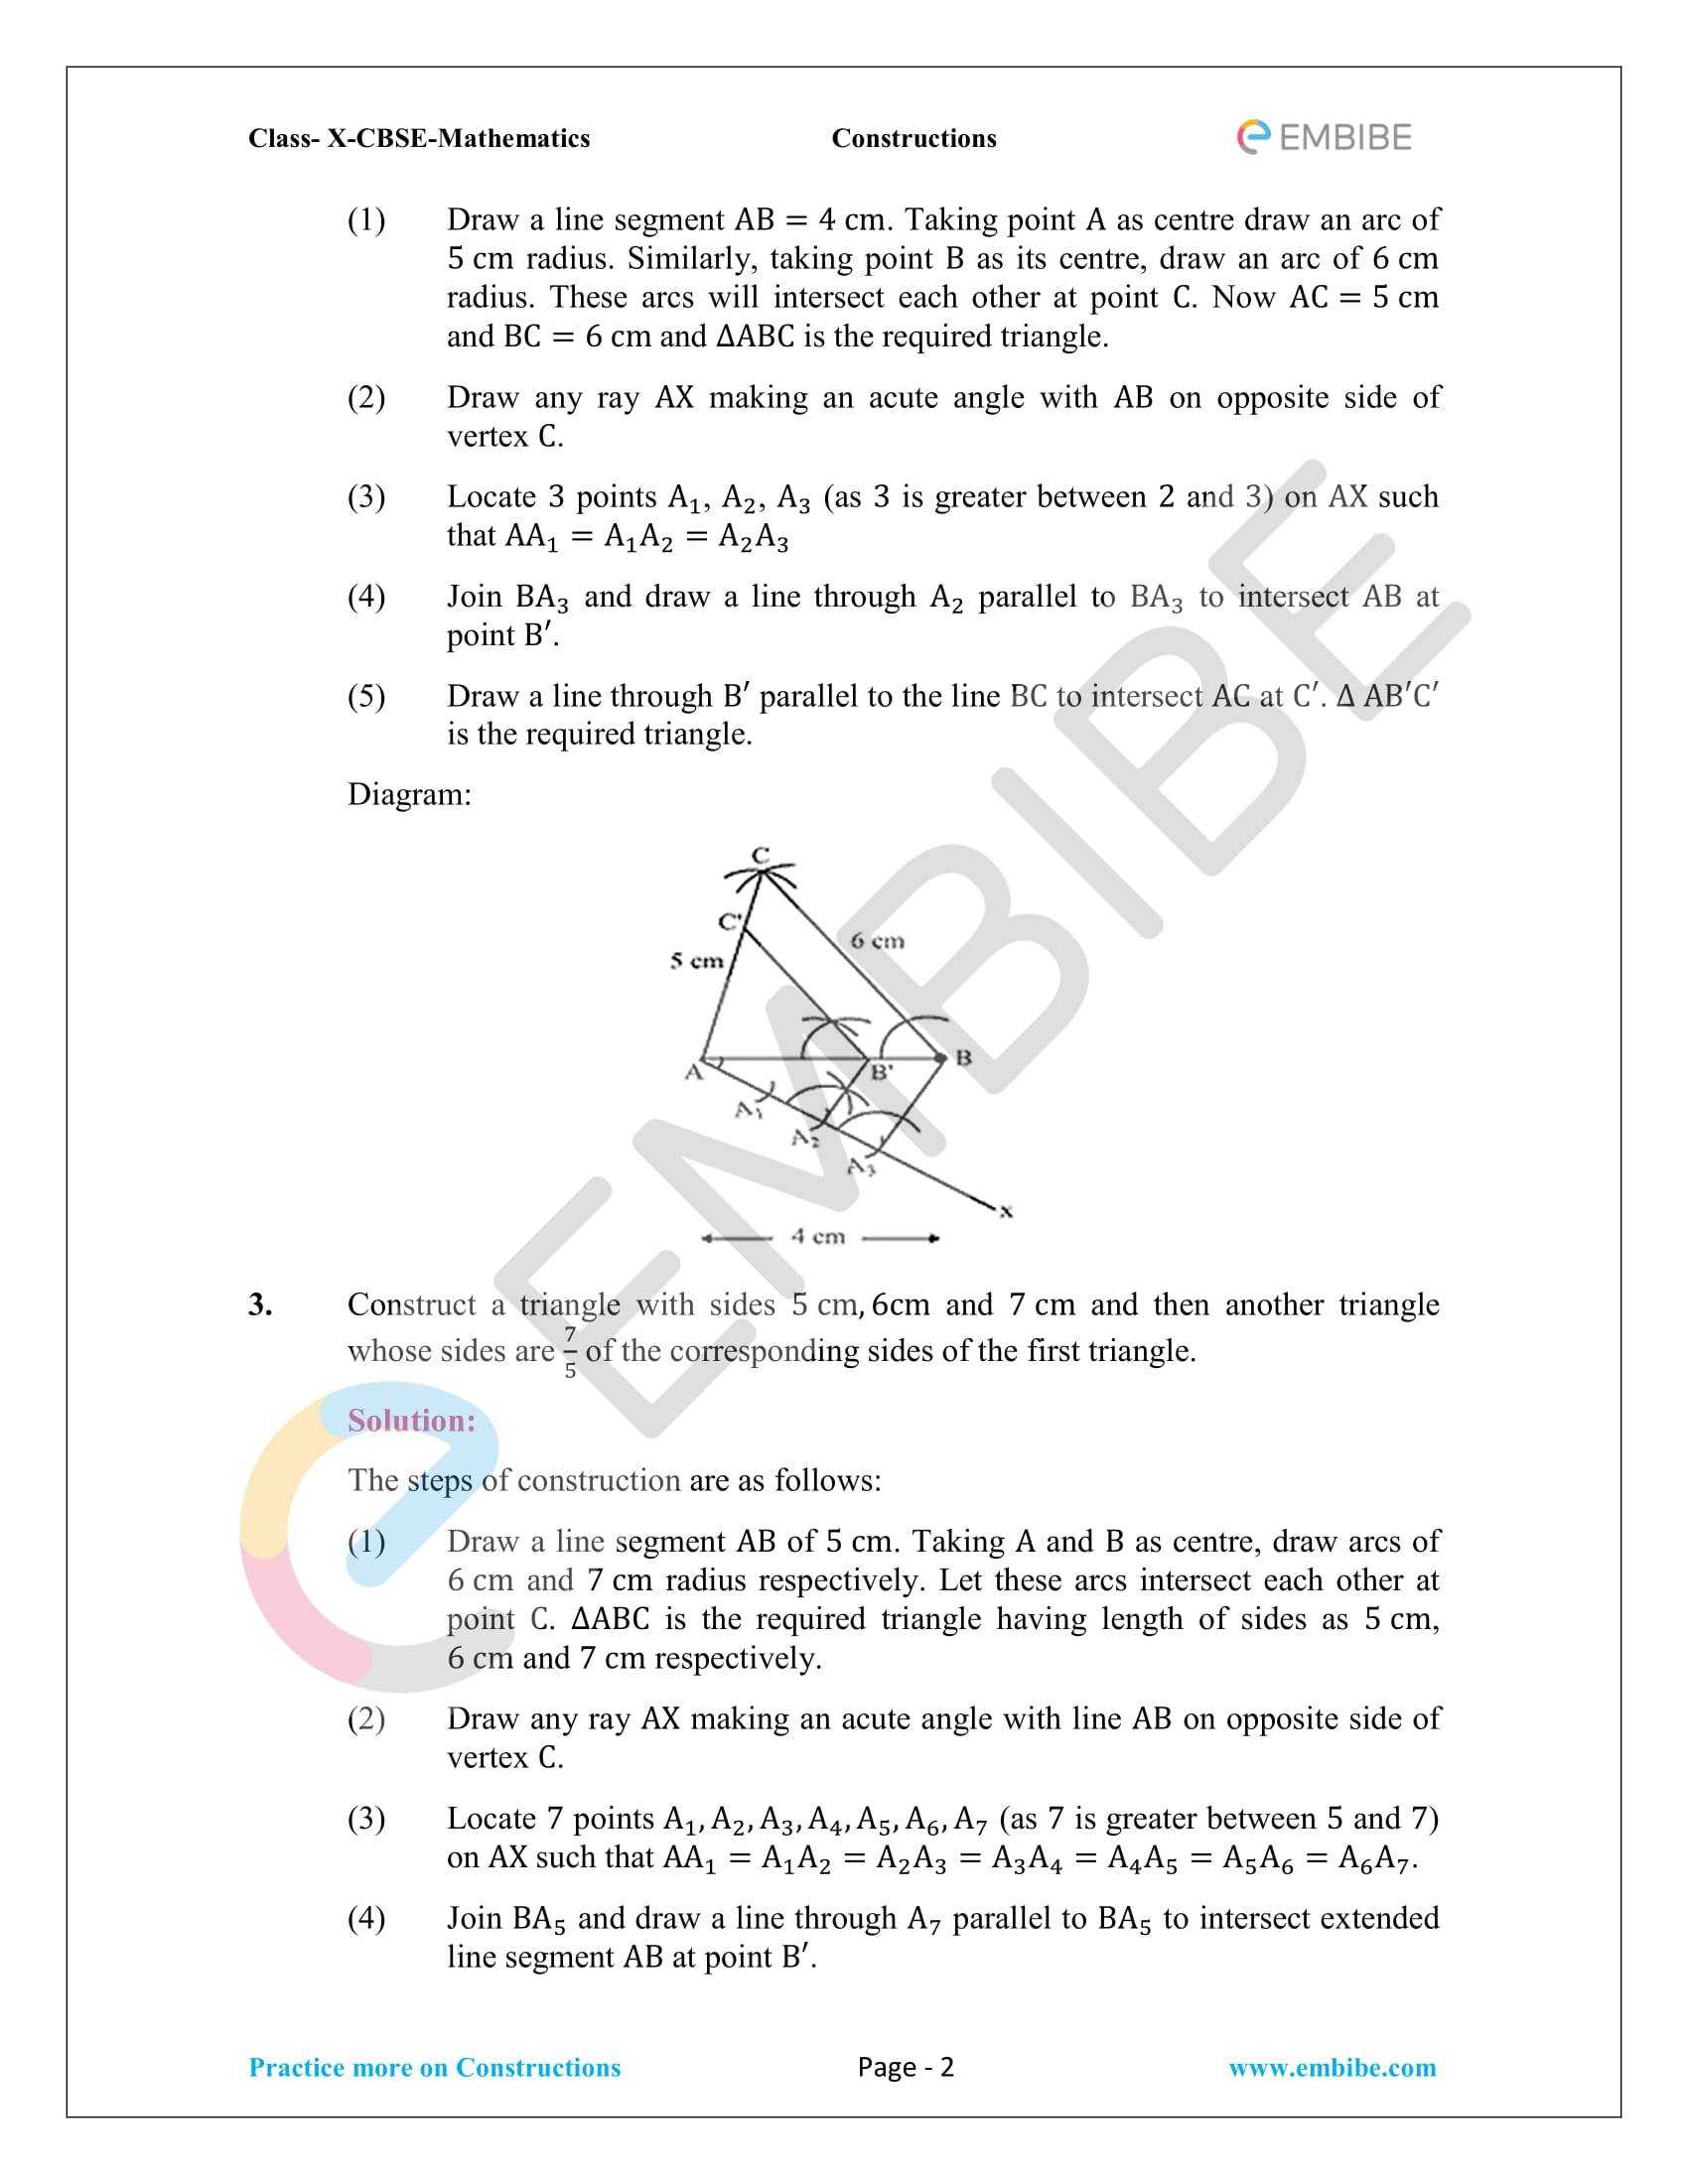 NCERT Solutions For Class 10 Maths Chapter 11: Constructions